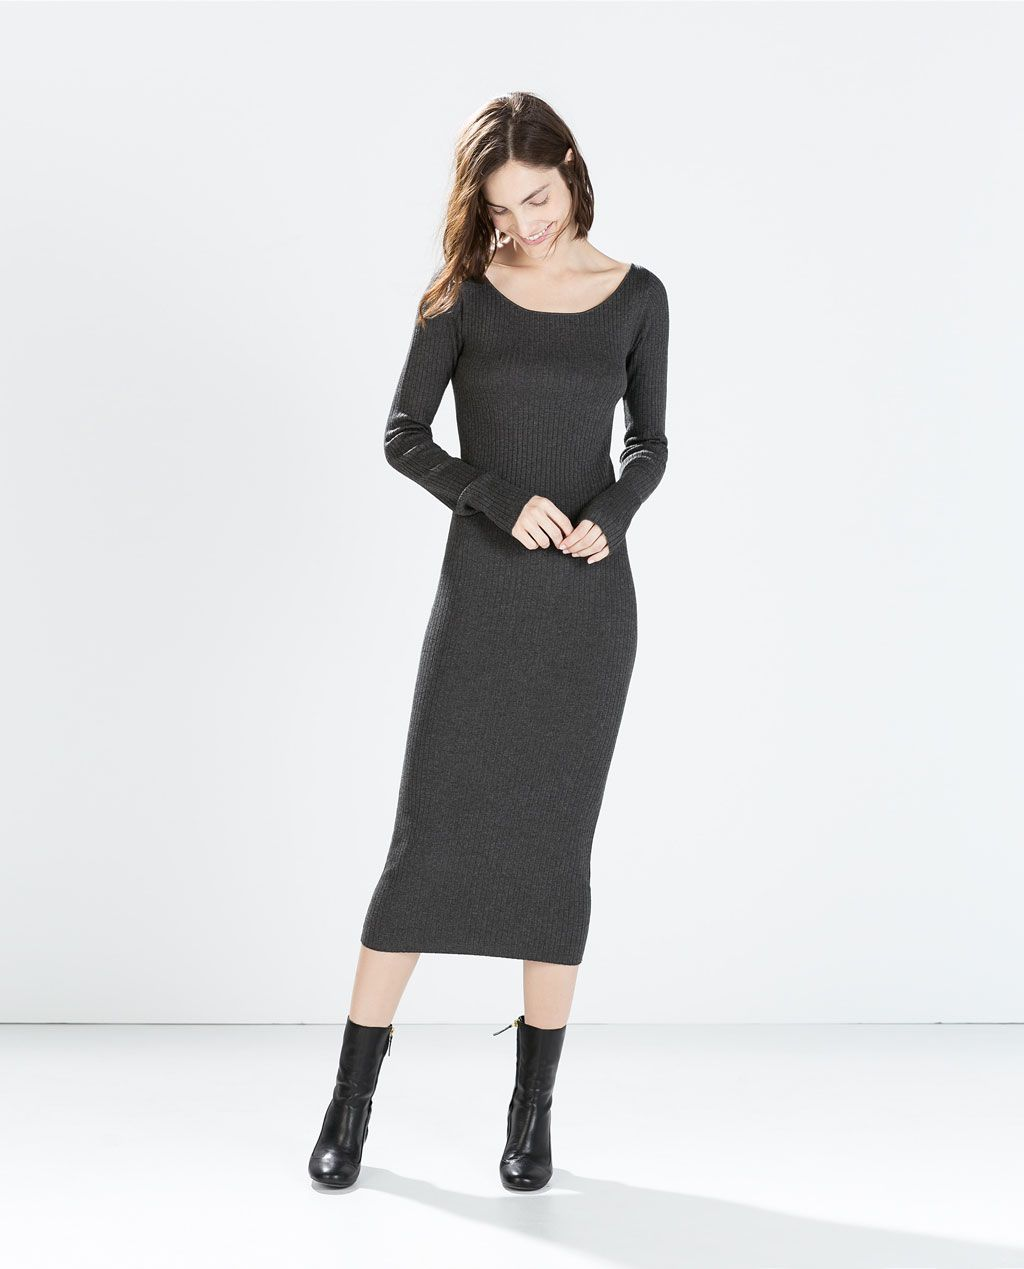 75987b817916 Image 1 of LONG RIBBED DRESS from Zara | apparel clothing style ...